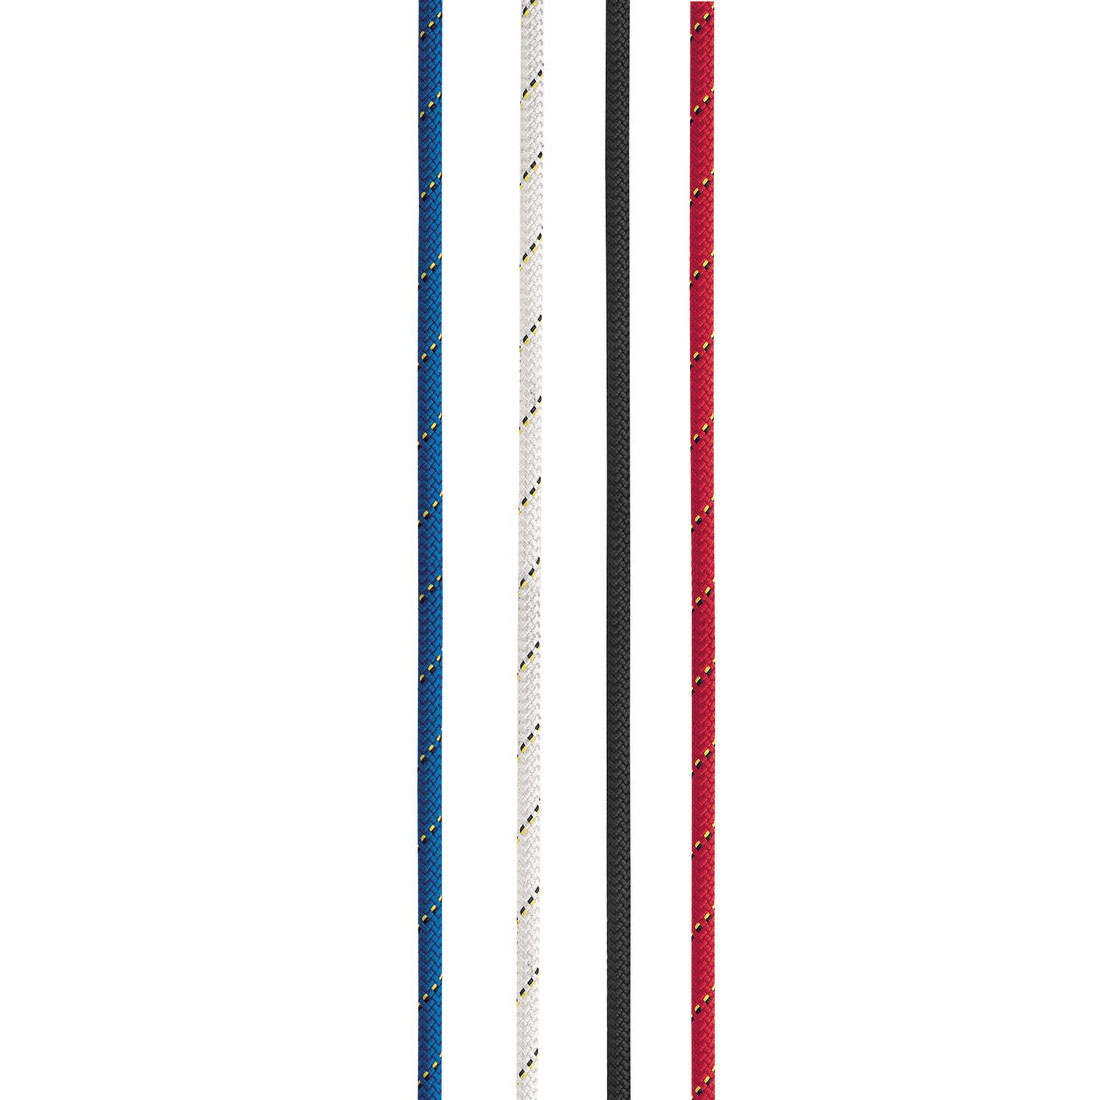 VECTOR rope, NFPA, 11mm x 183m (600ft)